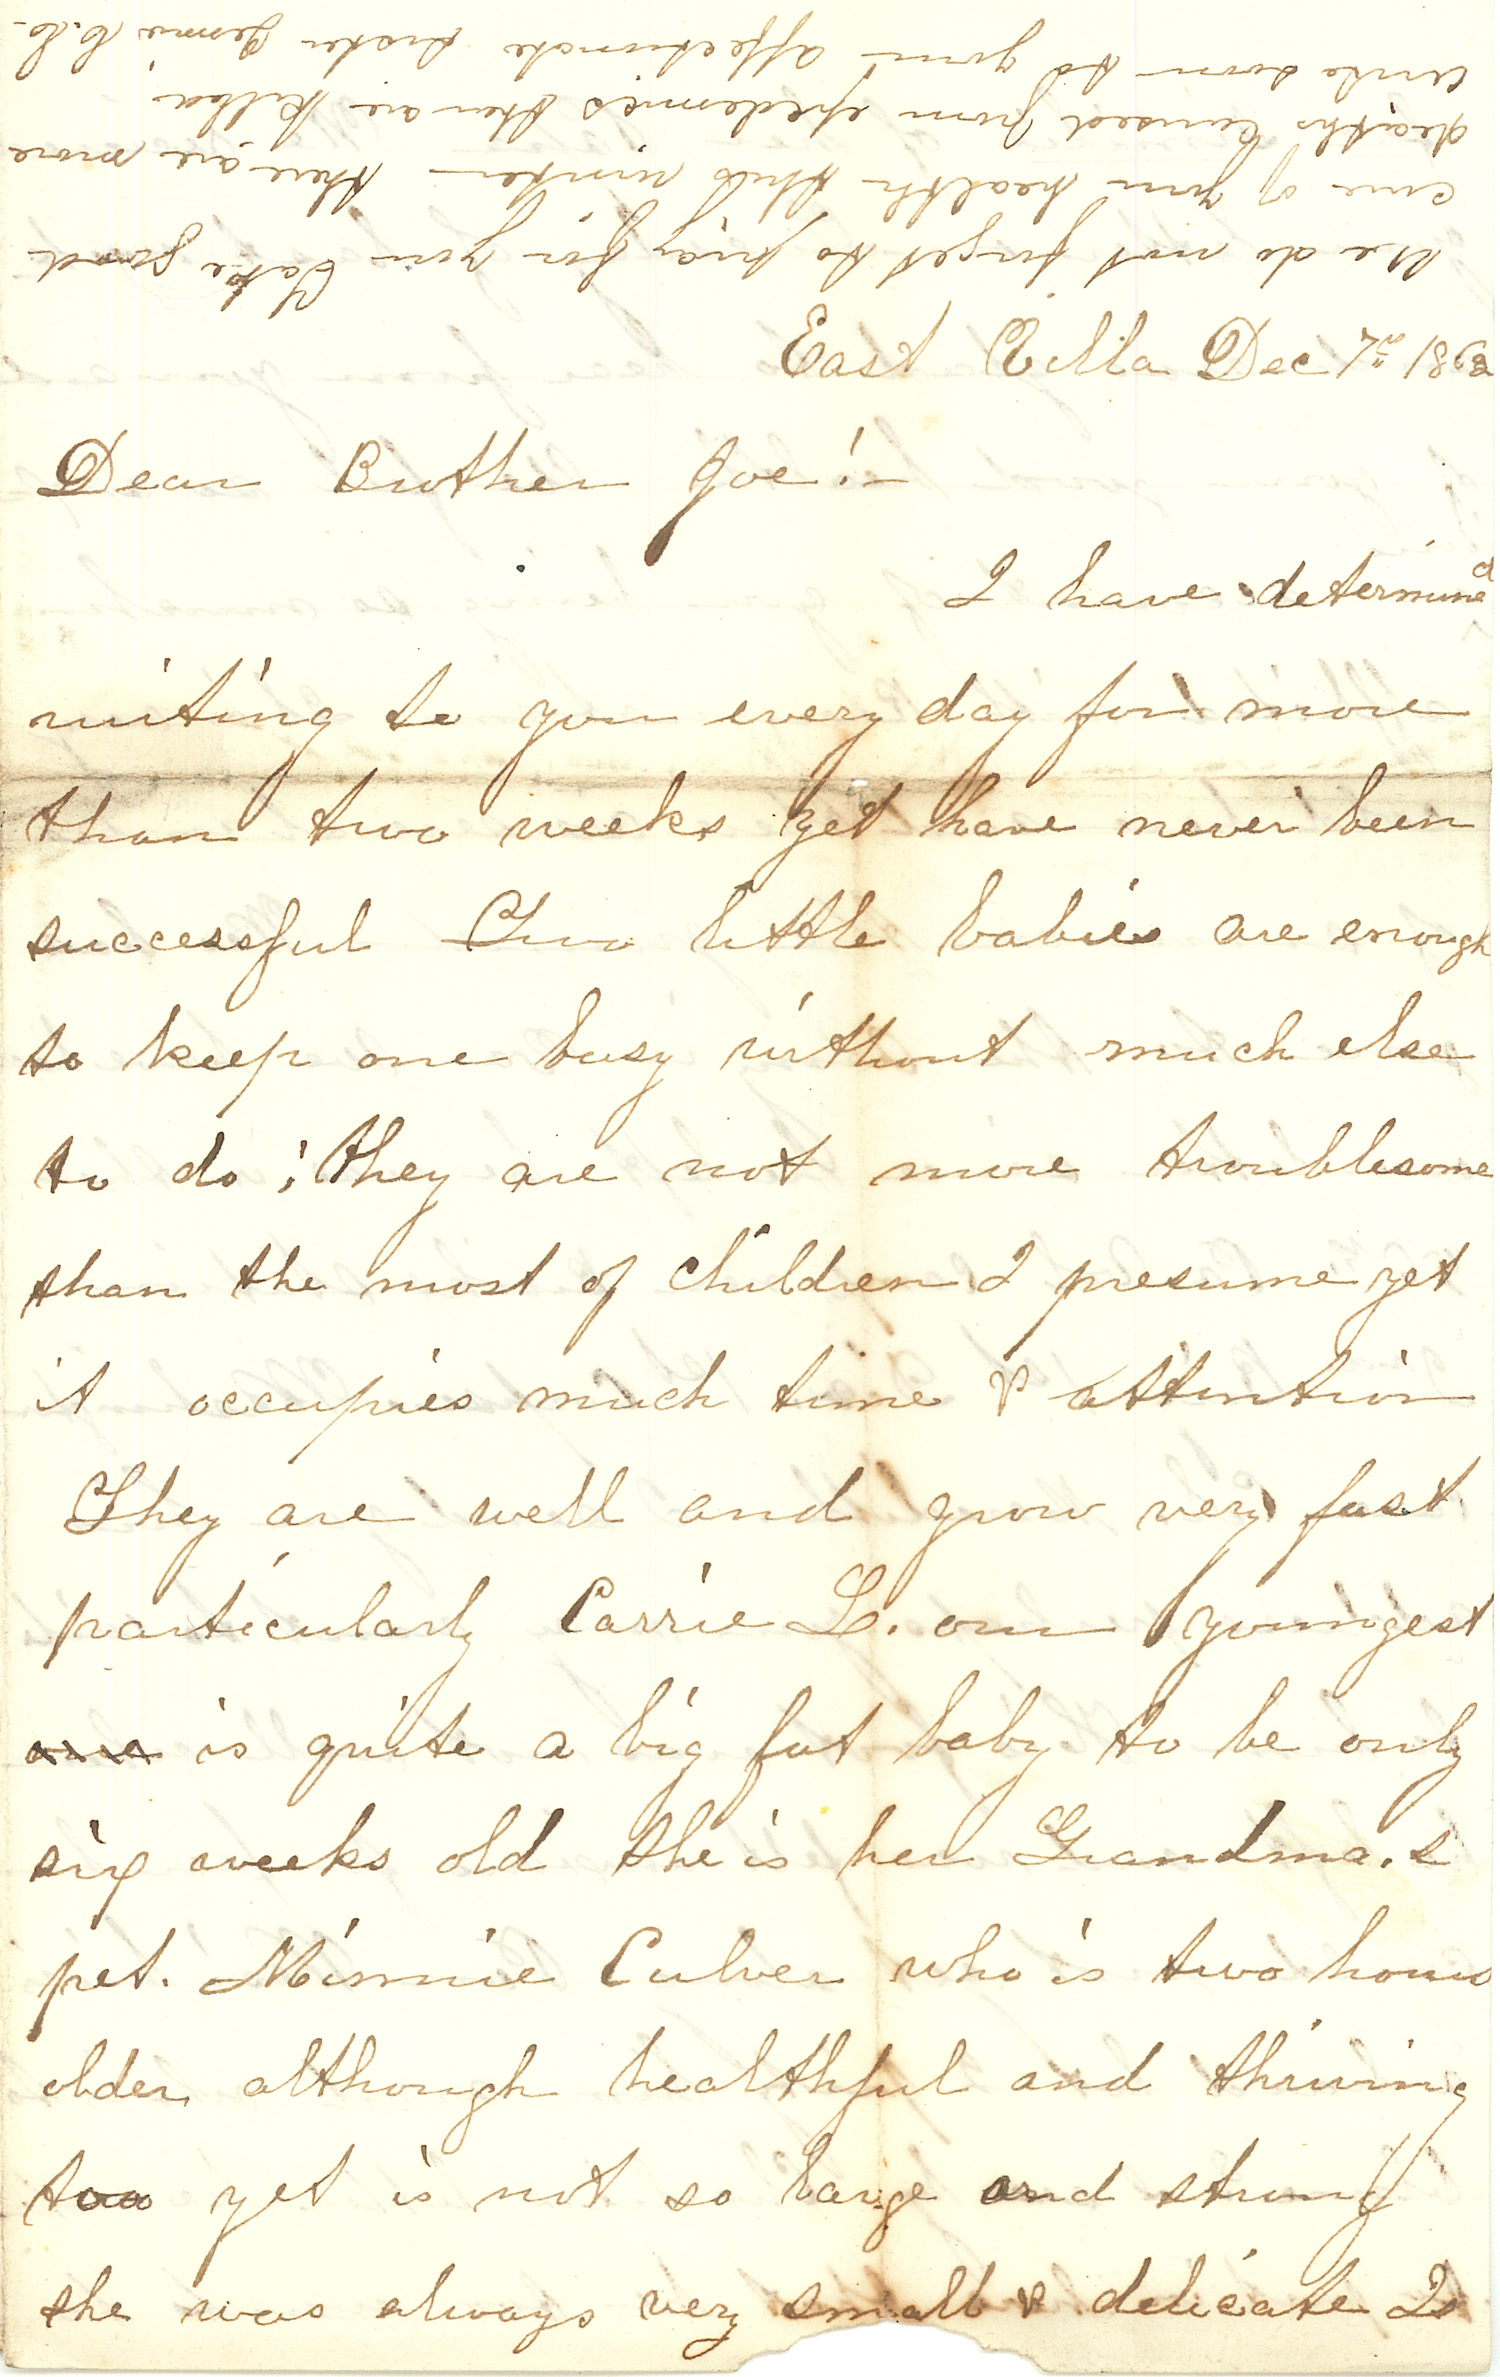 Joseph Culver Letter, December 7, 1863, Page 1